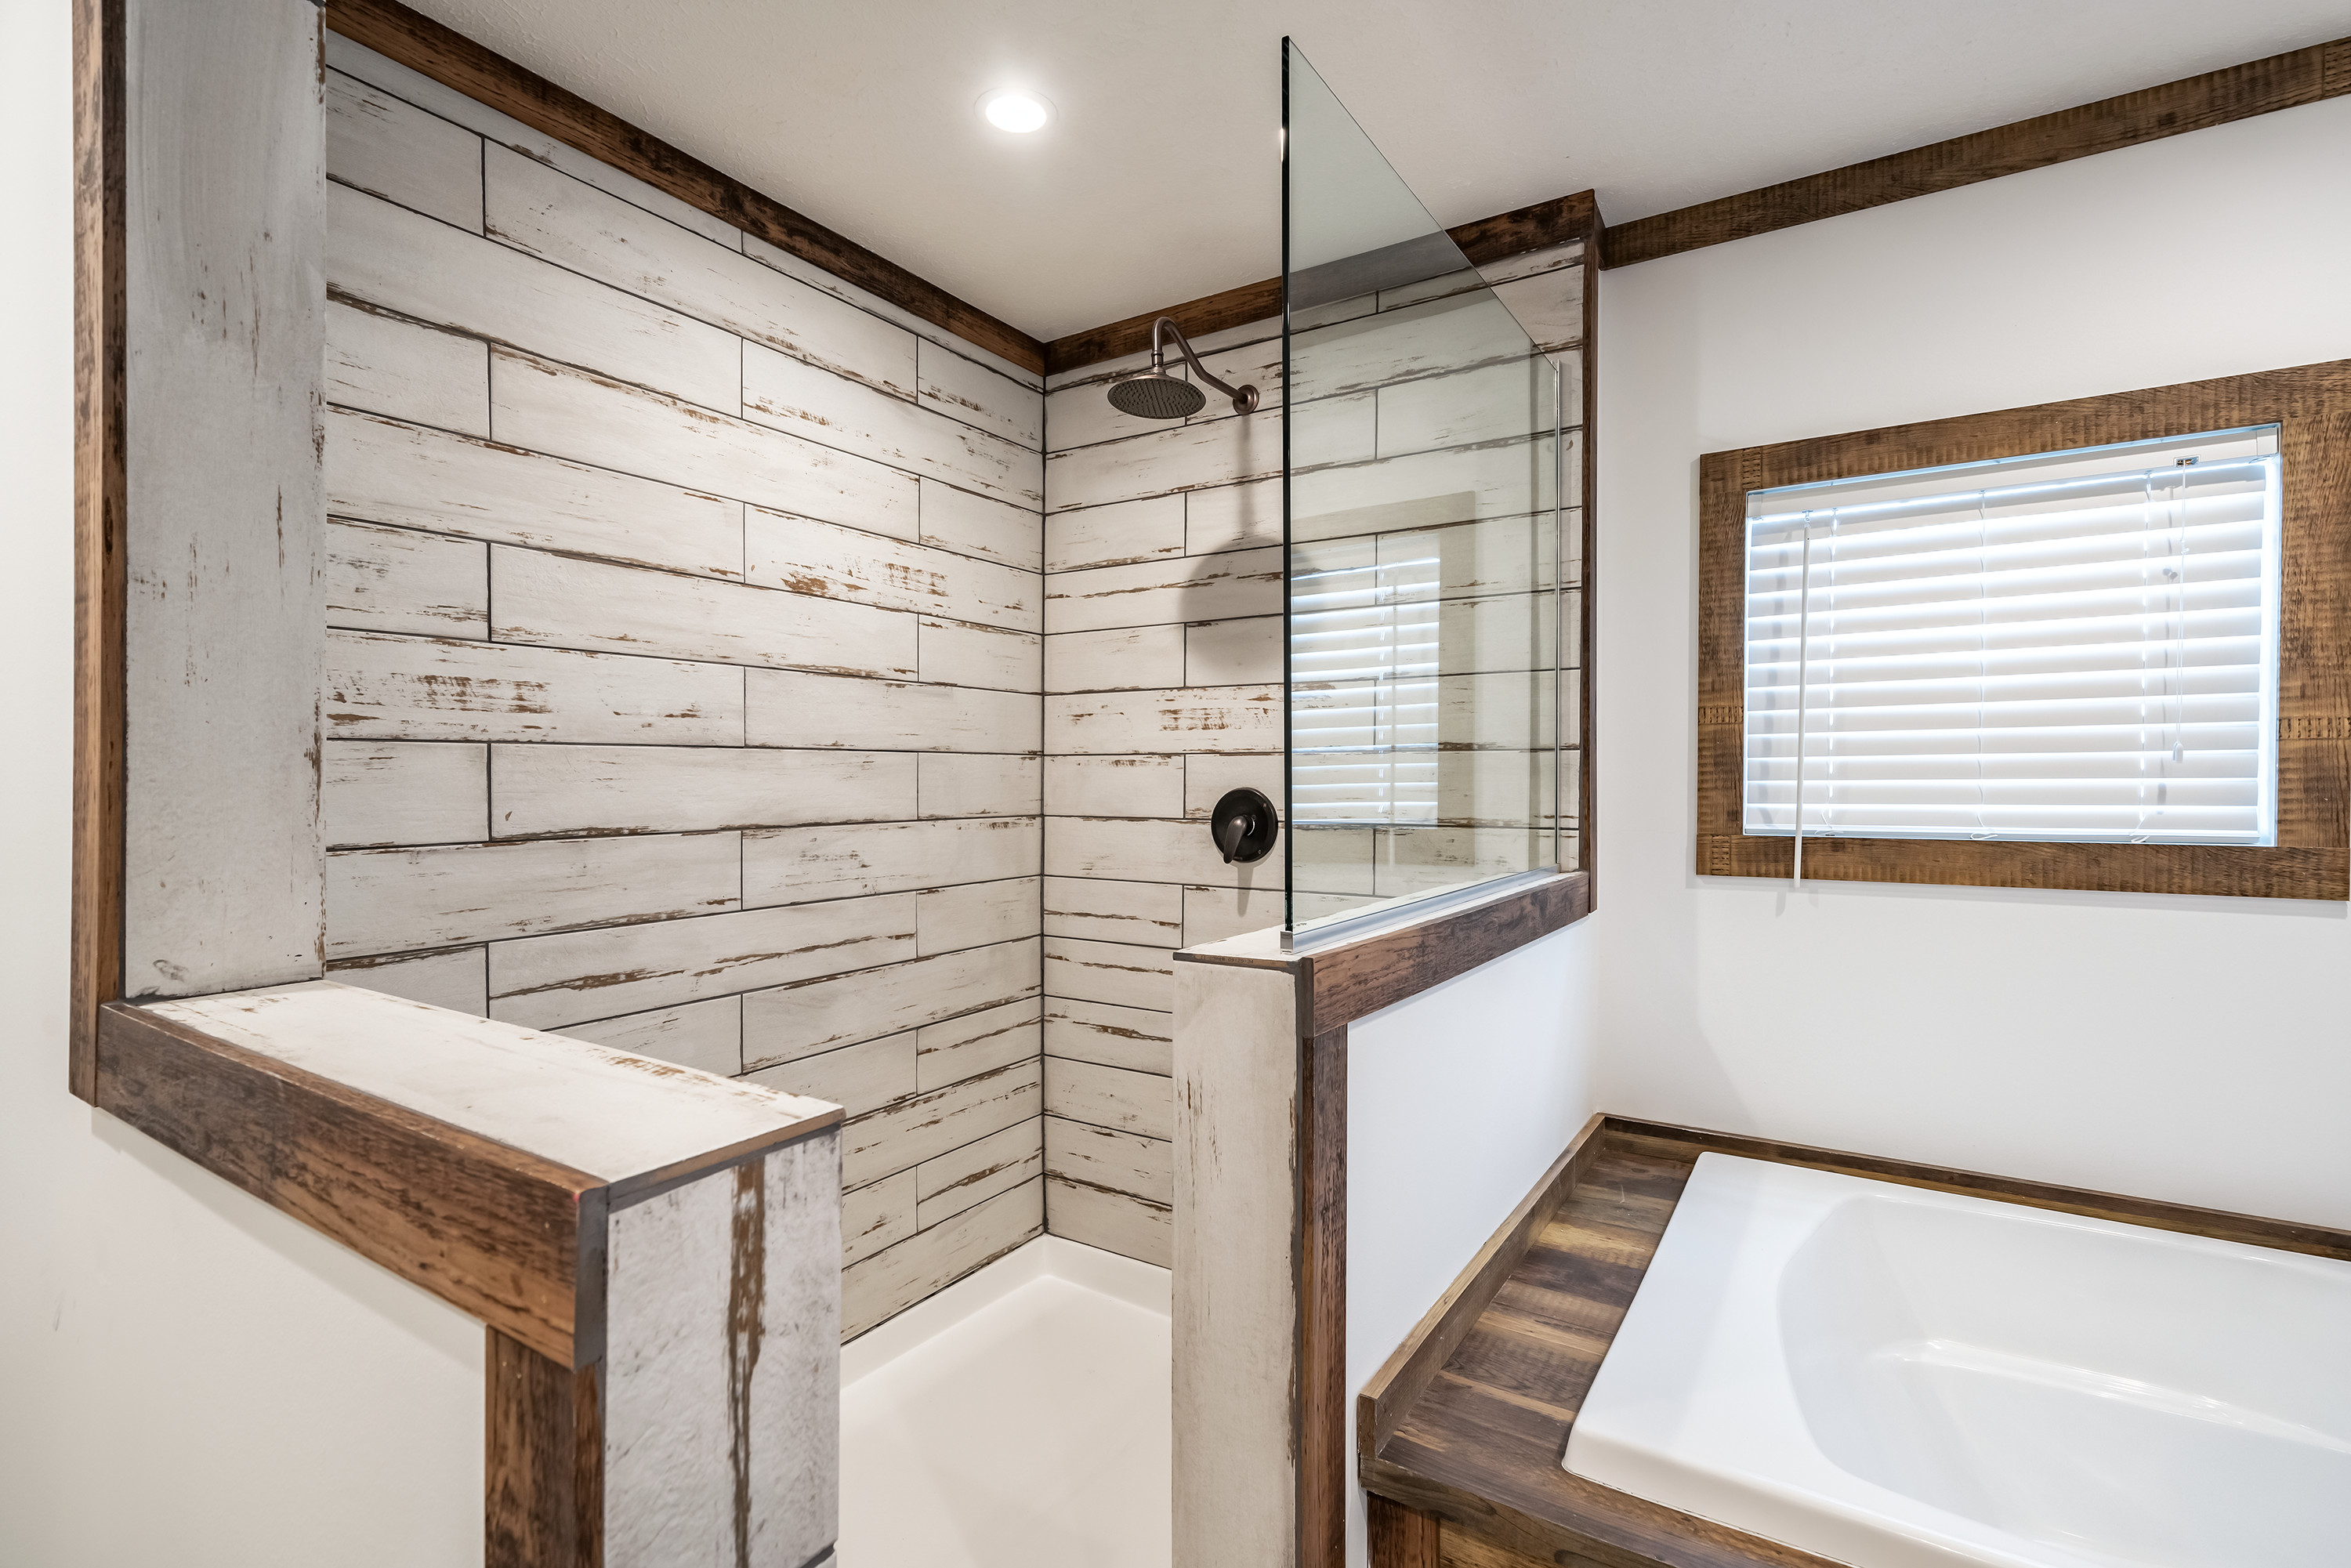 Large manufactured home bathroom with antiqued wood inside a large walk-in shower.